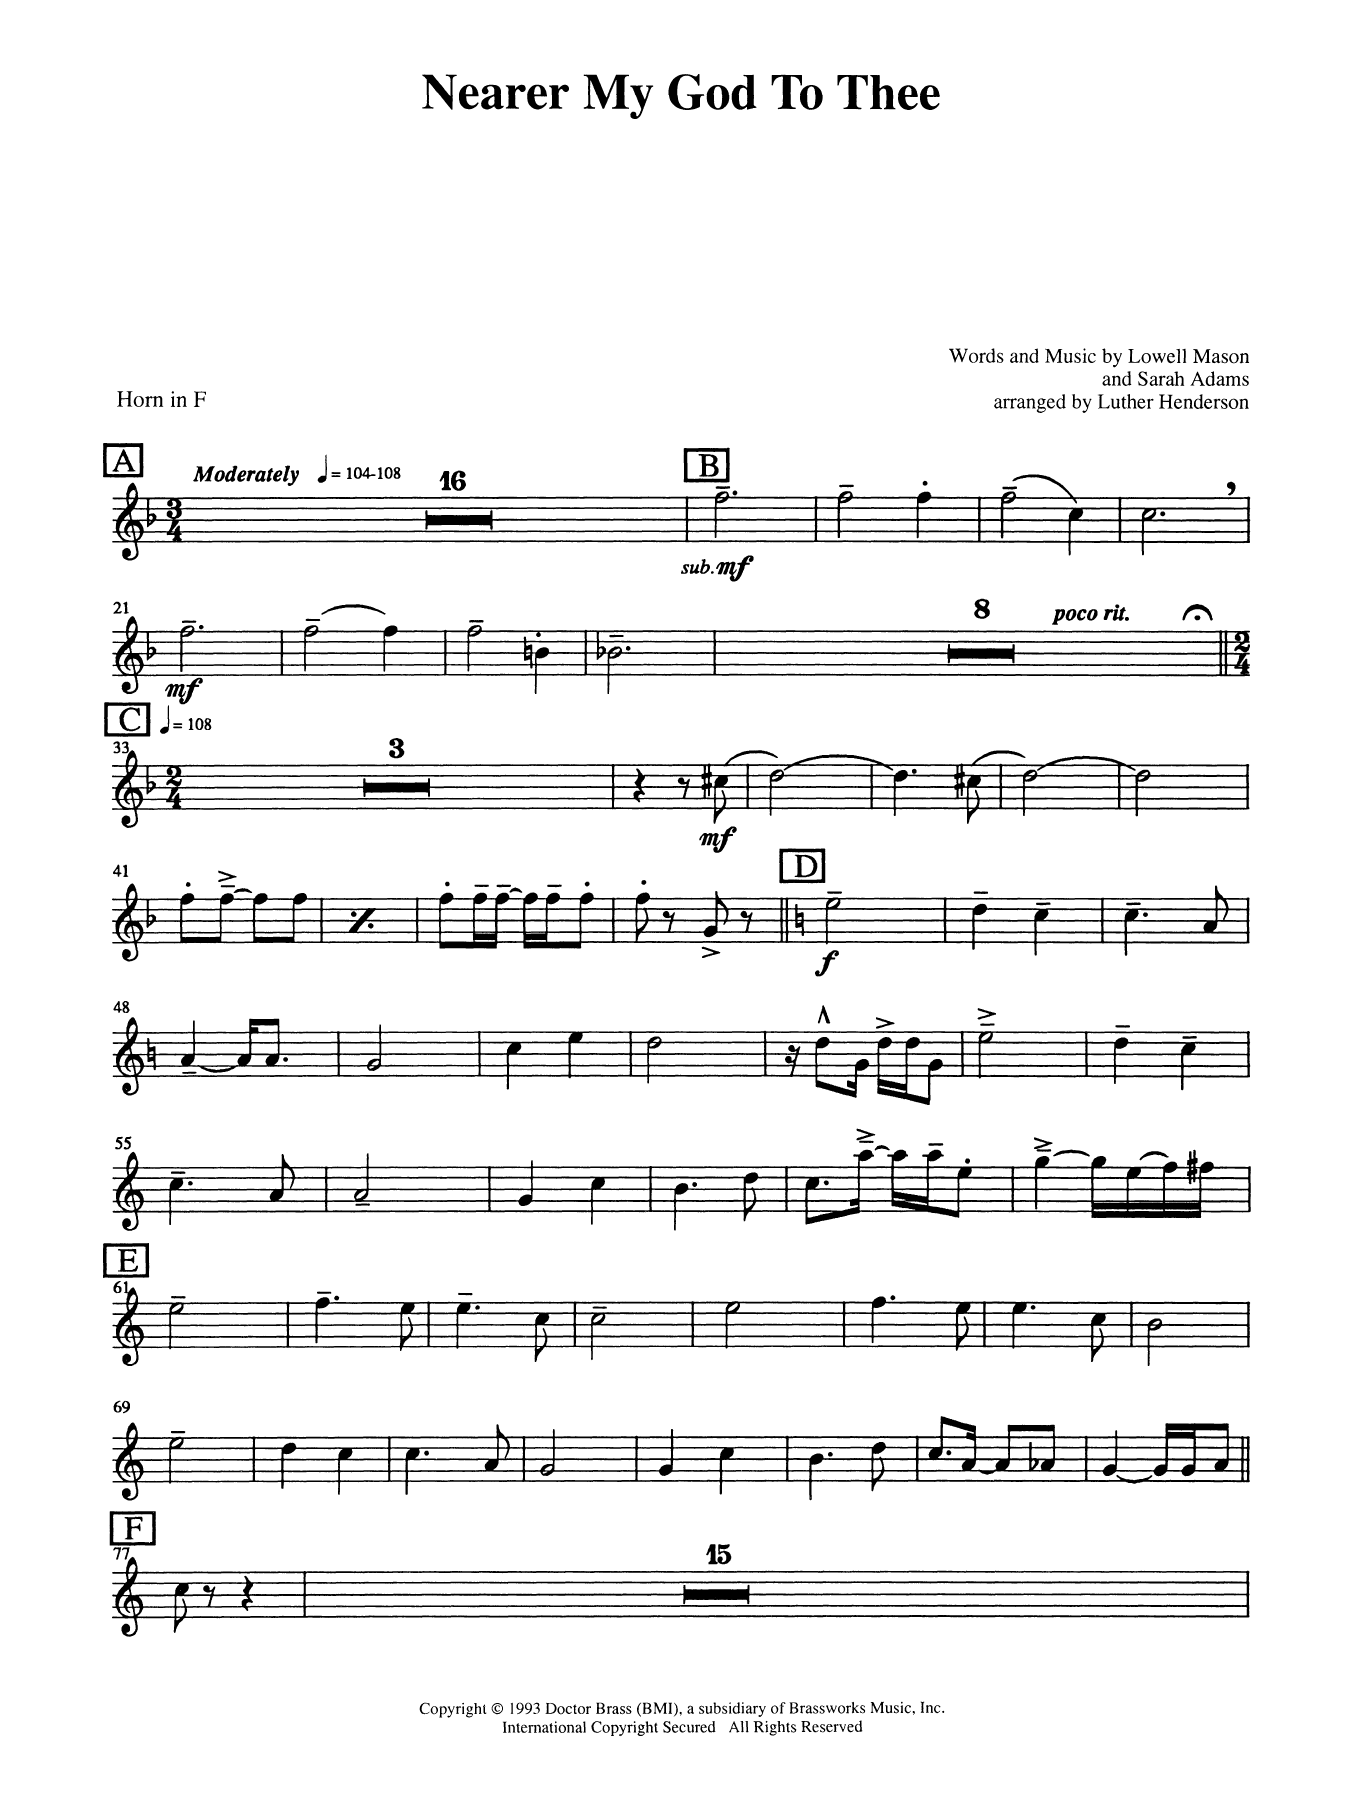 Nearer My God to Thee - Horn in F Sheet Music